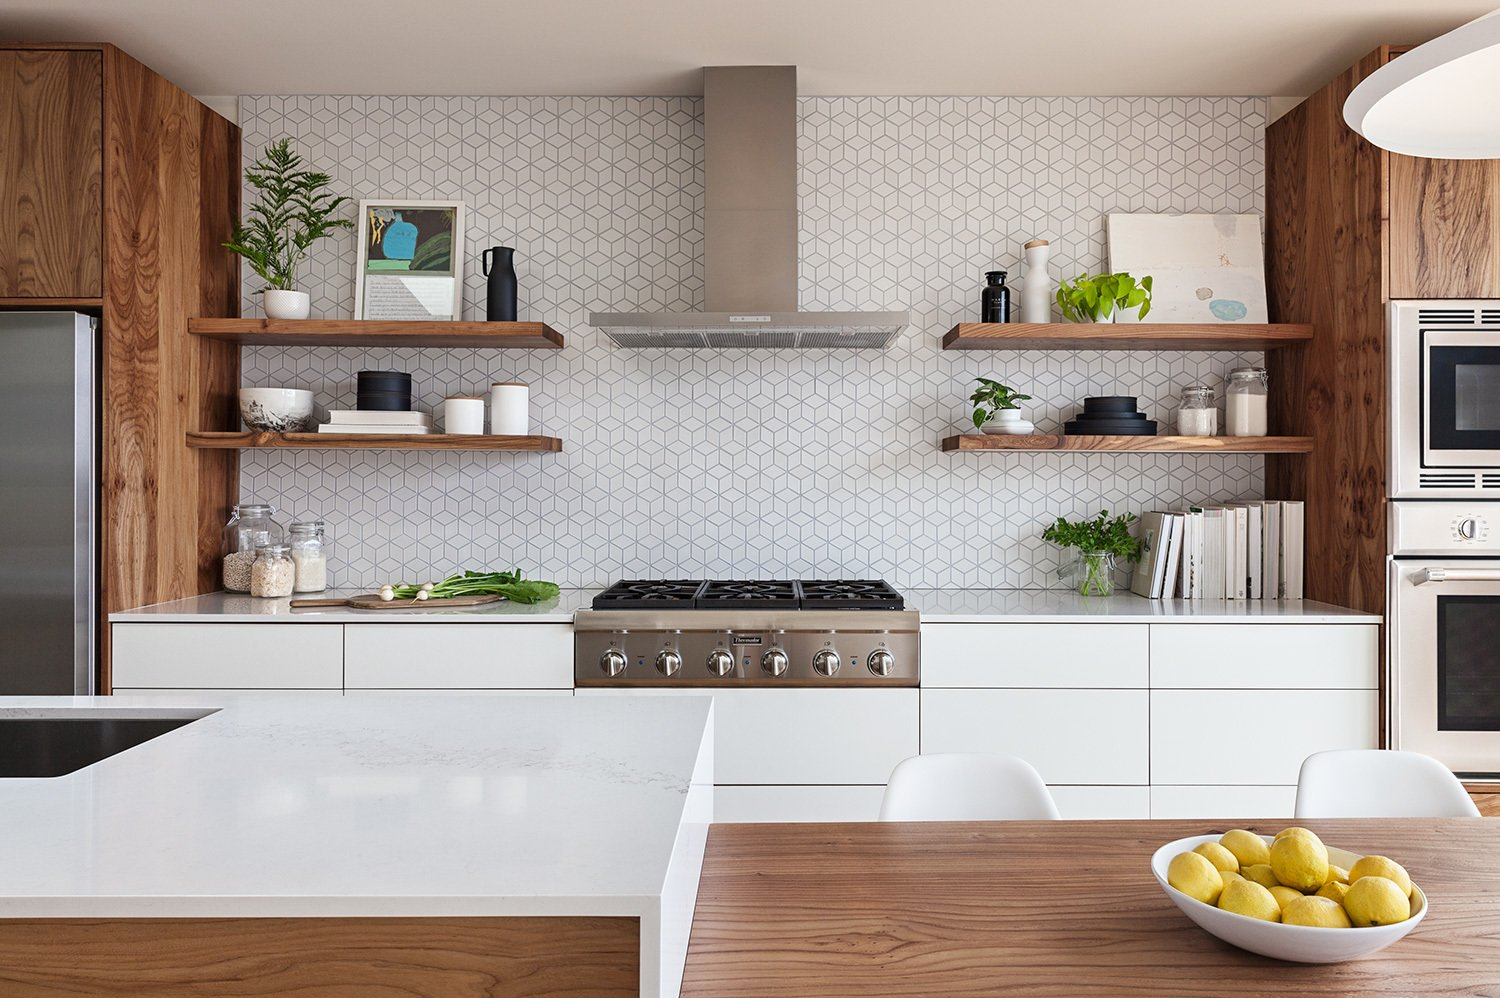 The Heath Ceramics wall tile backsplash was extended to full height and behind floating shelves to add texture and character to the minimal kitchen. Tagged: Kitchen, Refrigerator, Wall Oven, Range, Range Hood, Engineered Quartz, White, Wood, Laminate, Ceramic Tile, Pendant, Recessed, and Undermount.  Best Kitchen Engineered Quartz Undermount Photos from Los Palmos